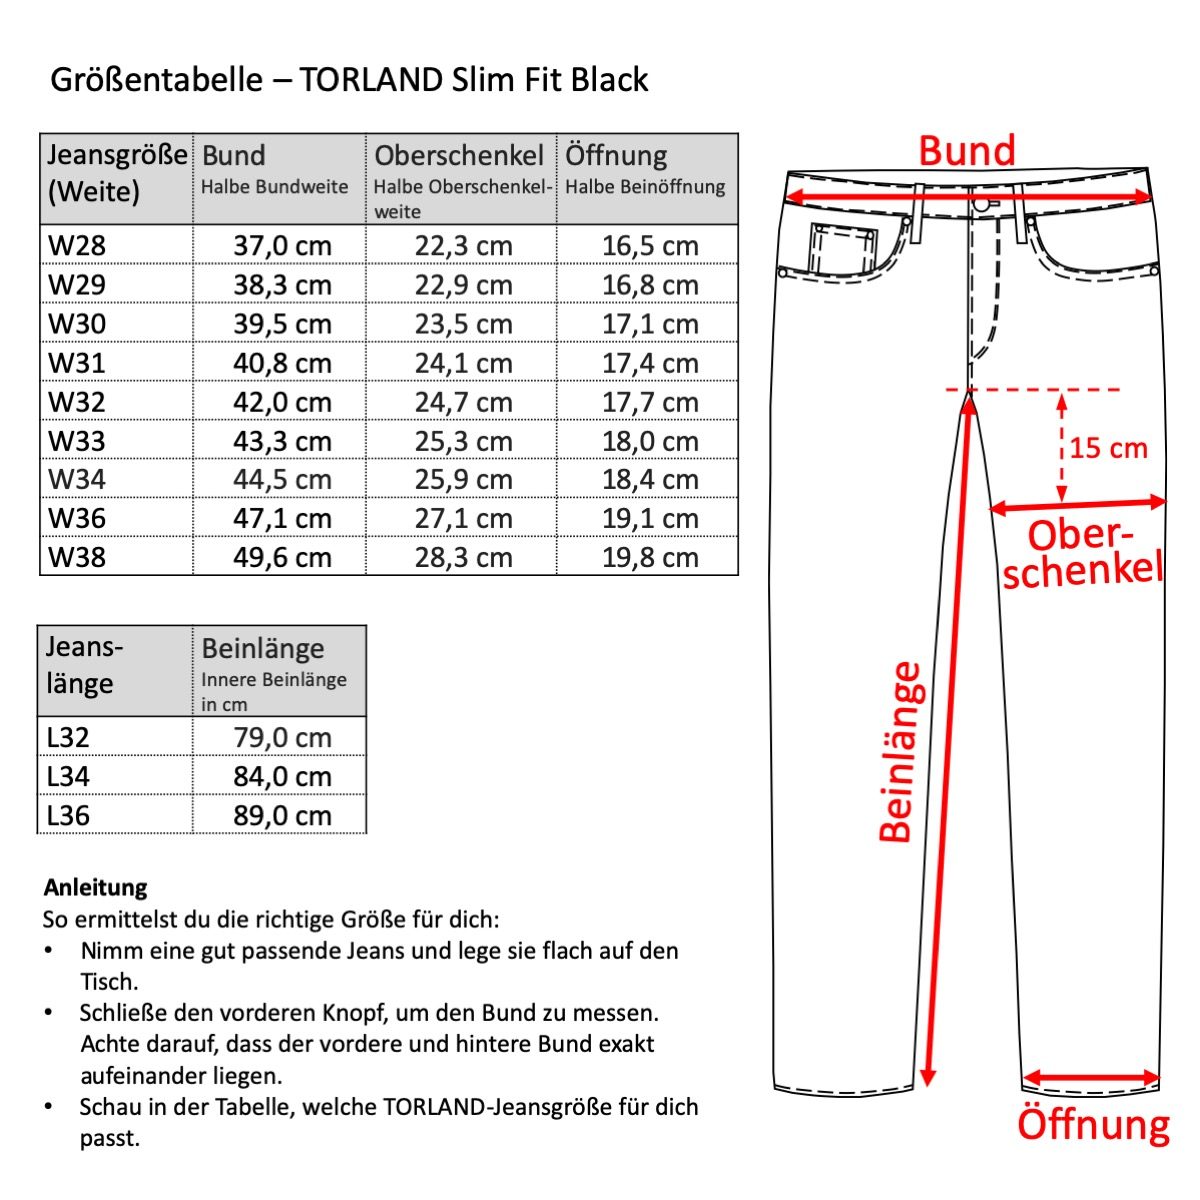 Grössentabelle - TORLAND Slim Fit Black